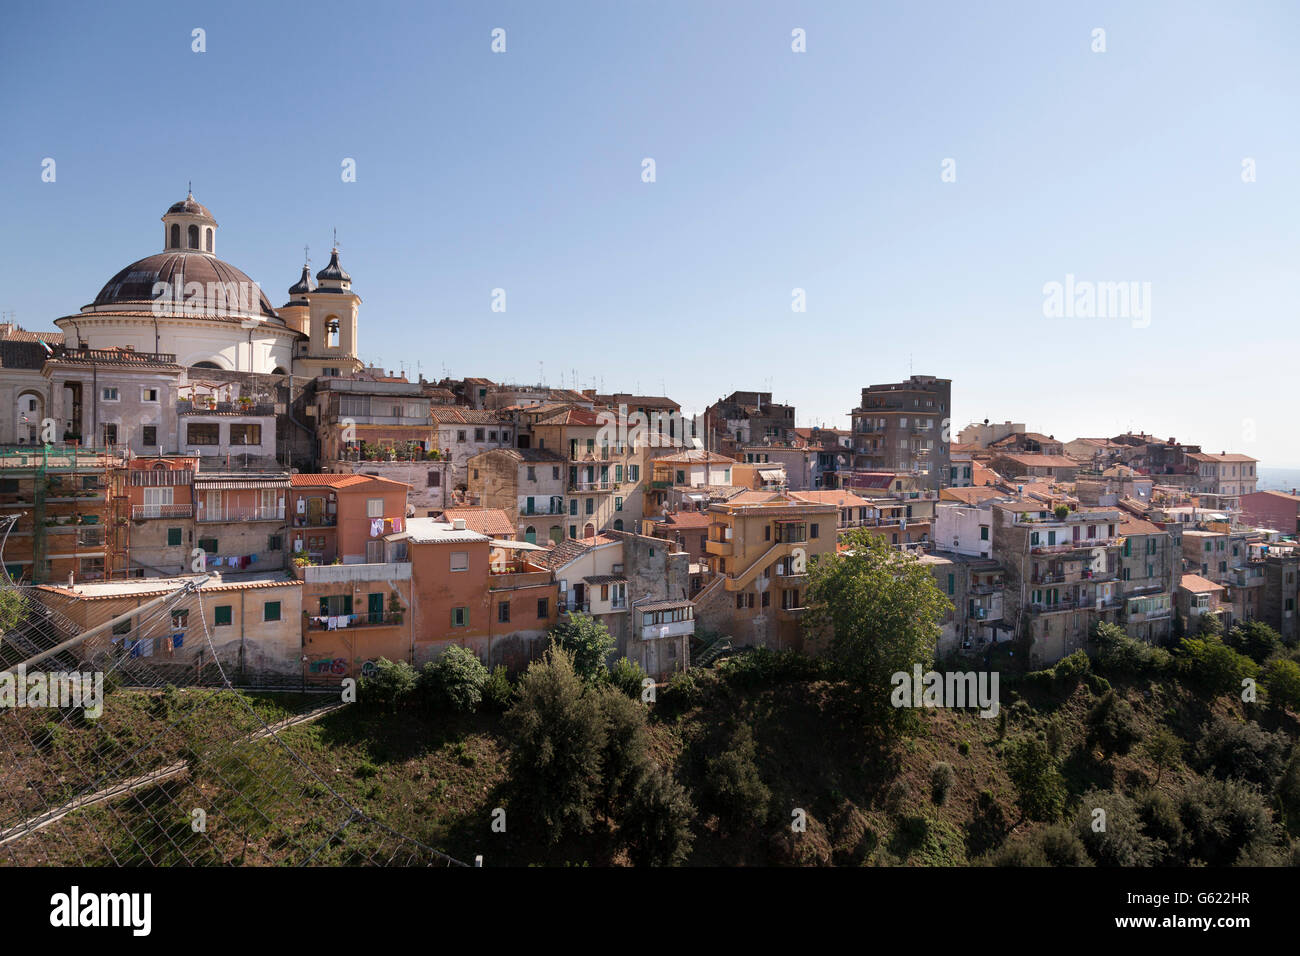 The town of Ariccia with cupola of Santa Maria Assunta in Cielo church, viewed from the bridge, Lazio, Italy, Europe - Stock Image